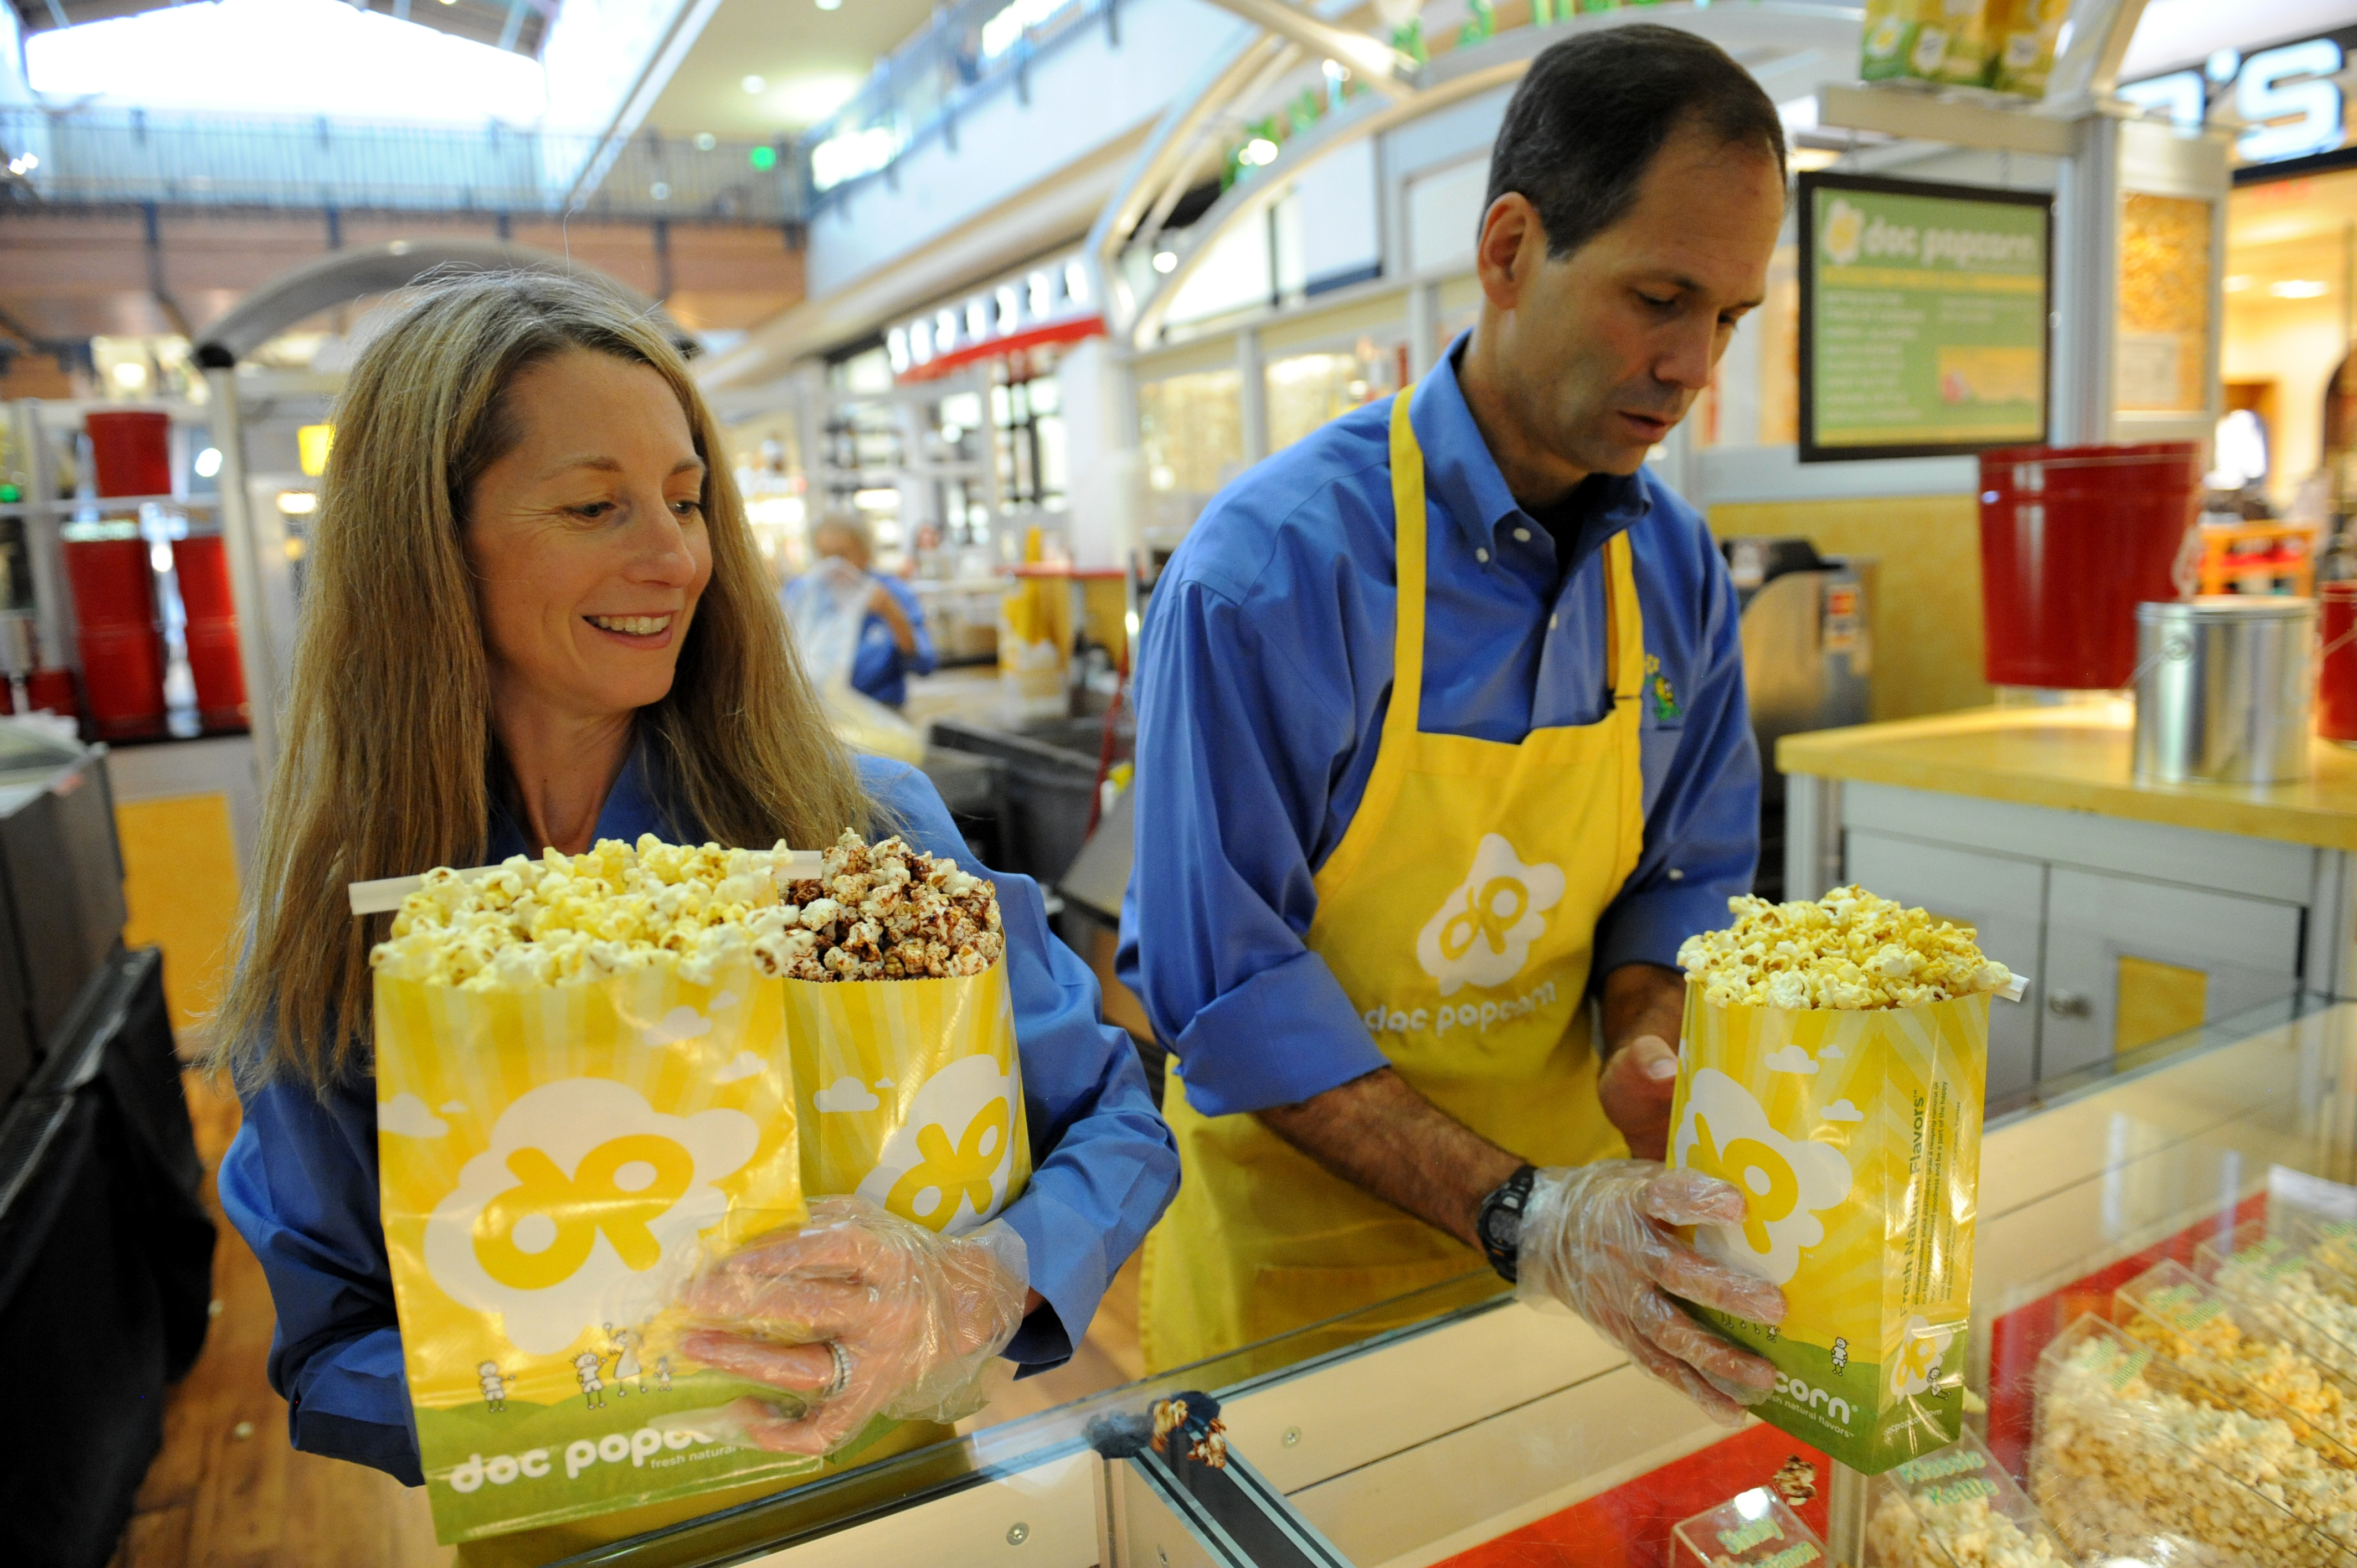 Founders and owners of Doc Popcorn Renee Israel, left and her husband Rob Israel, are shown at their popcorn stand at Flatirons Mall in Broomfield. Their local company, which they say was started in Boulder, is now in 22 other states. Helen H. Richardson, The Denver Post  (Photo By Helen H. Richardson/The Denver Post via Getty Images)